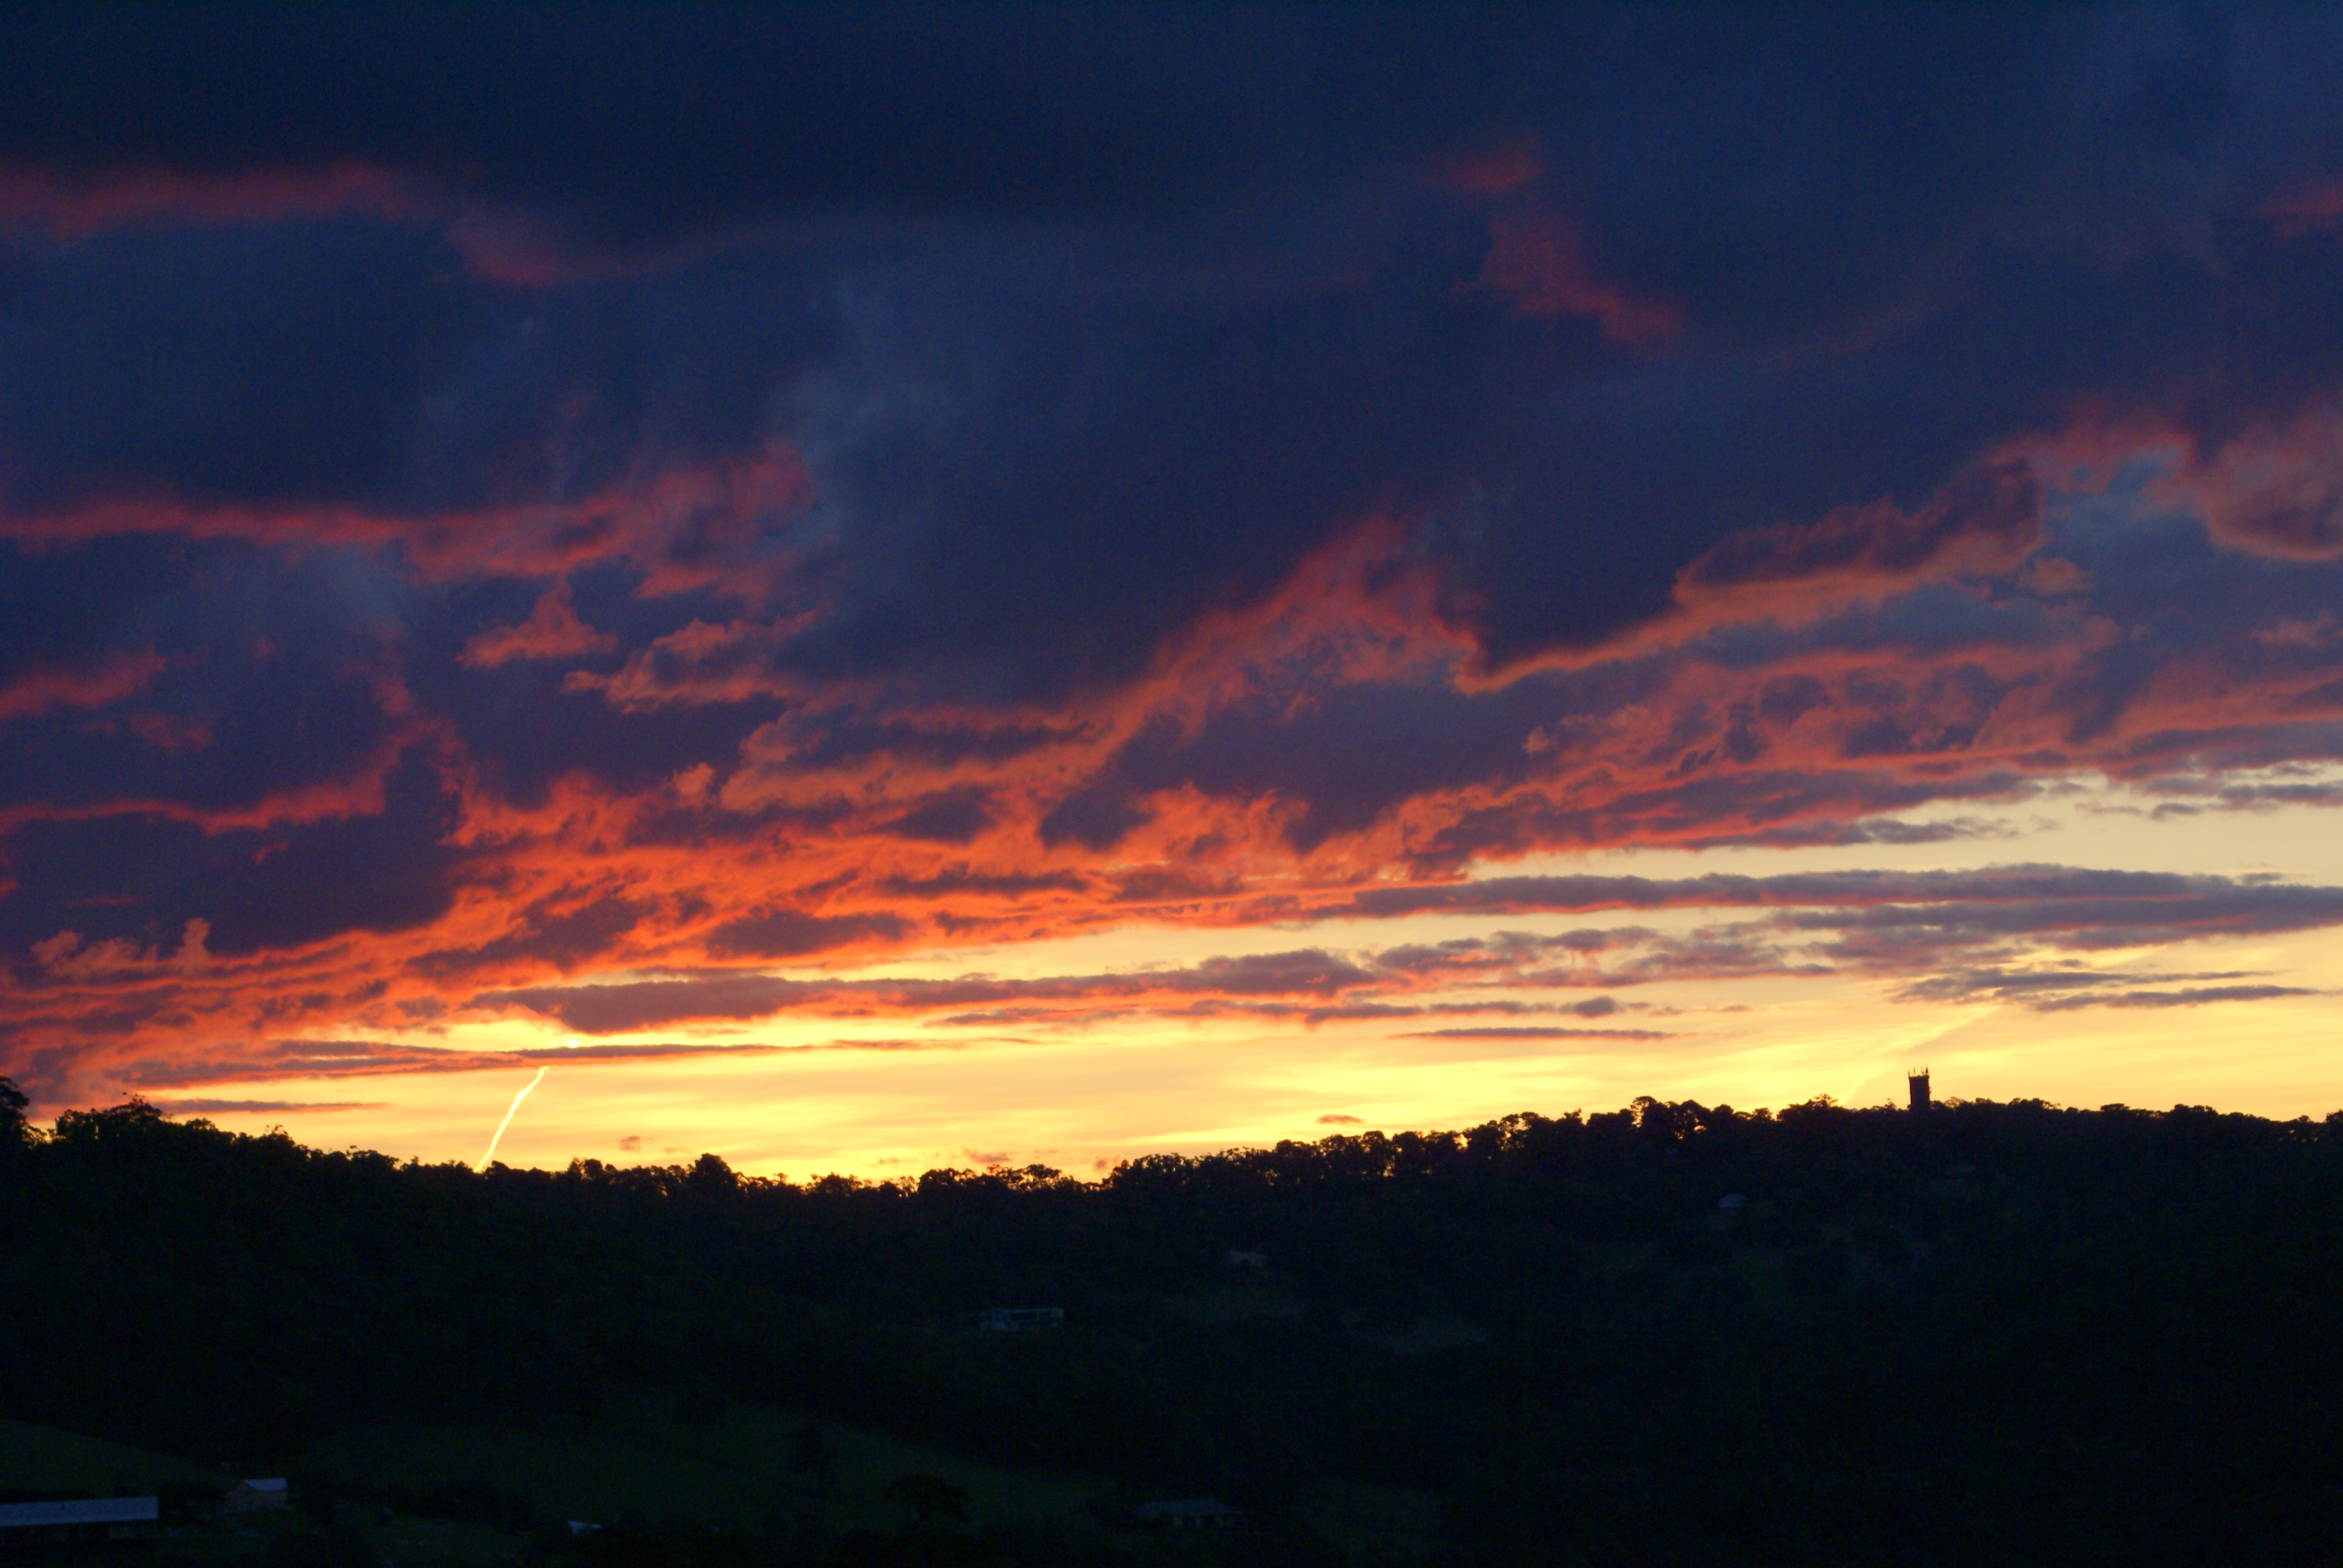 Sunset looking towards Upper Beac water tower